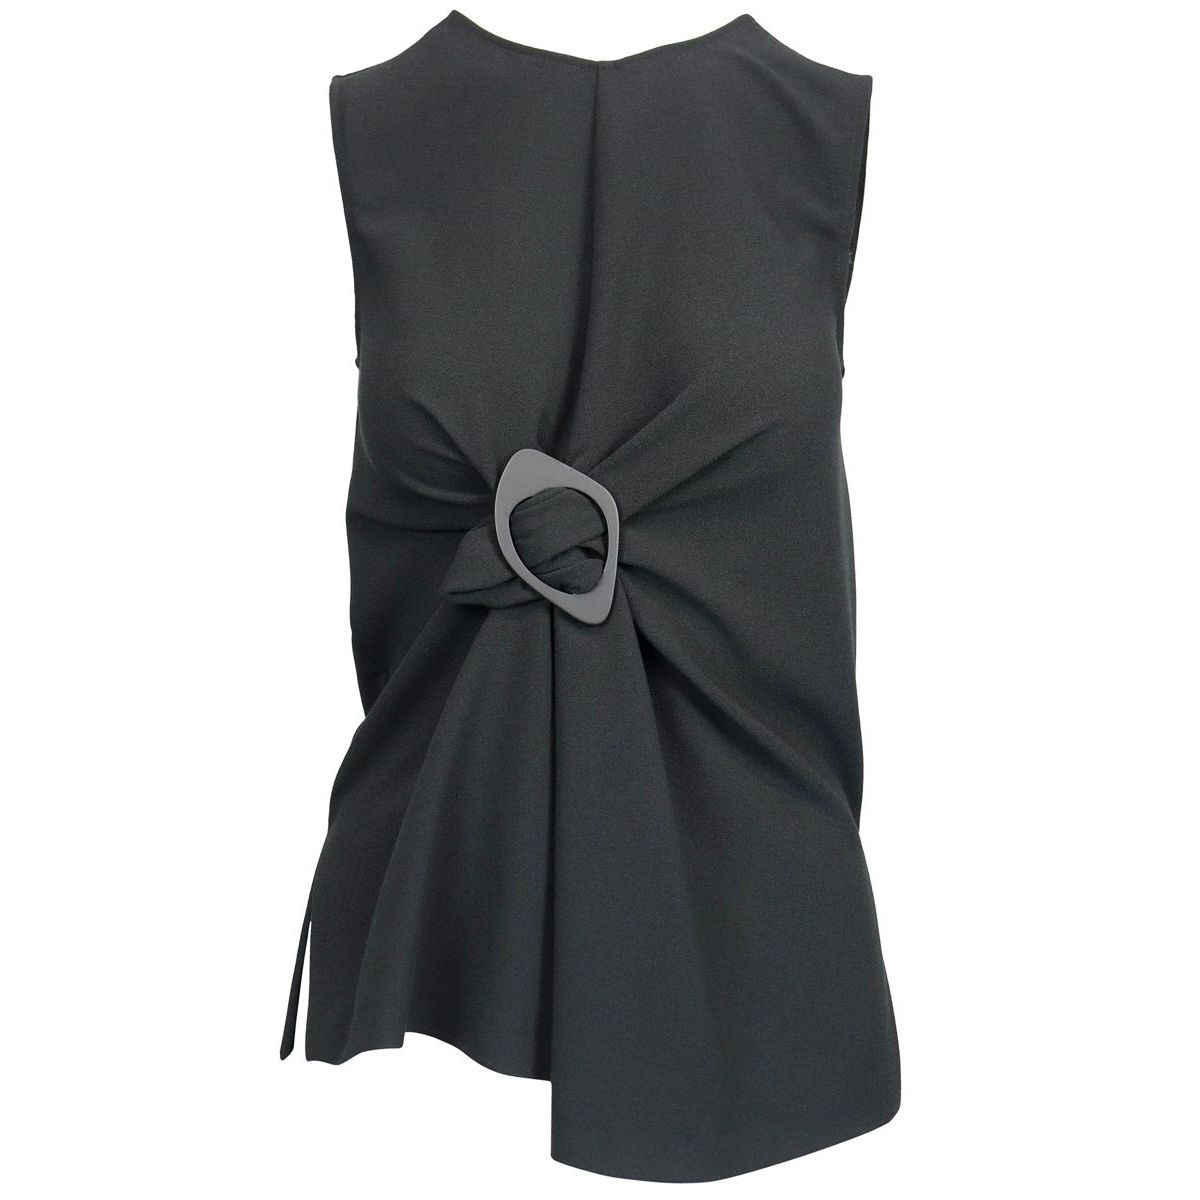 Sleeveless top with central buckle and asymmetrical hem Black Maliparmi